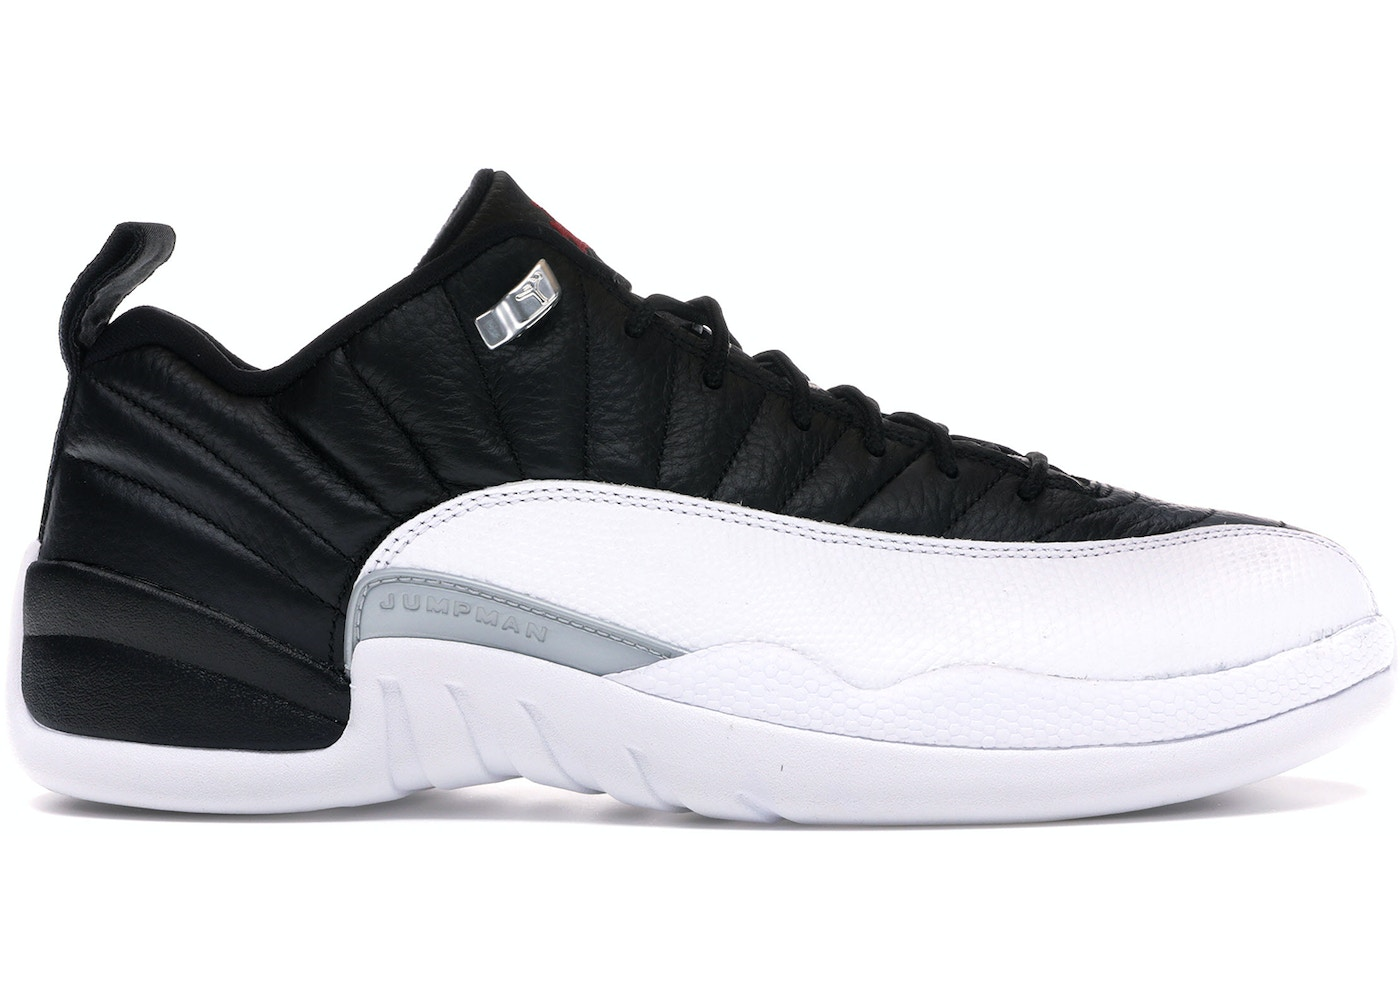 212ef7bc413 Jordan 12 Retro Low Playoffs - 308317-004